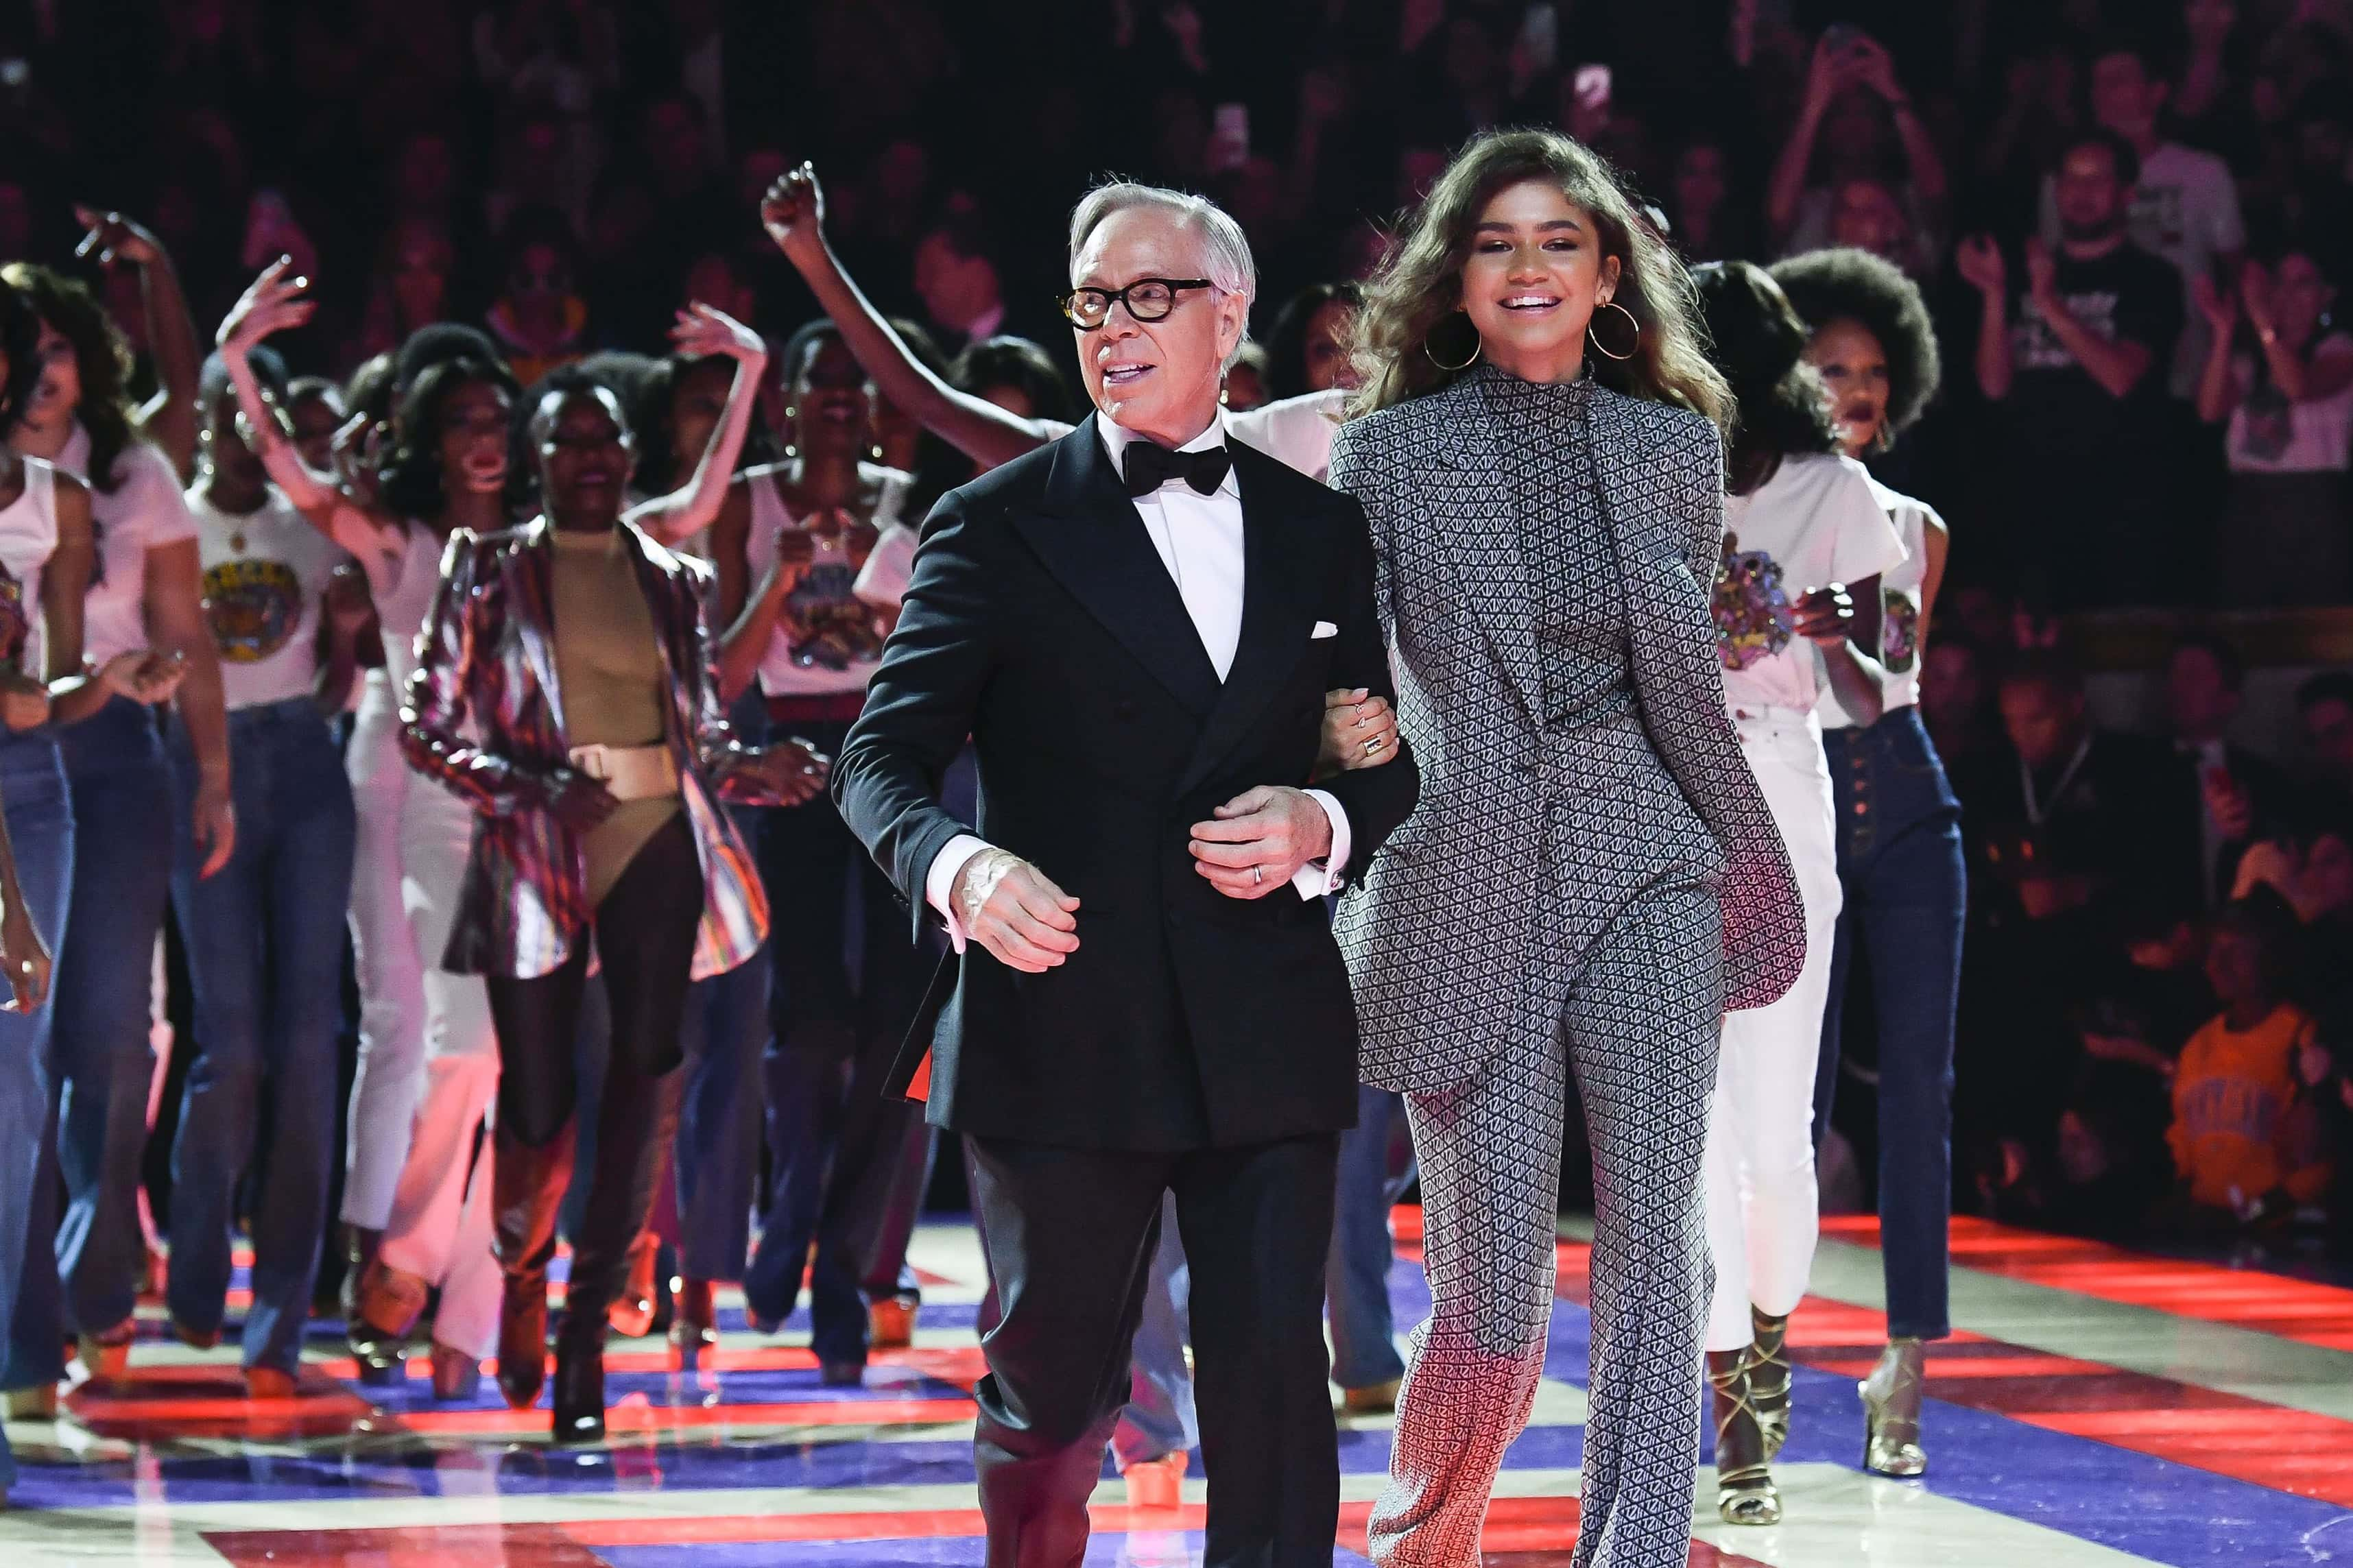 NYFW: Watch the spectacular Tommy Hilfiger and Zendaya show here